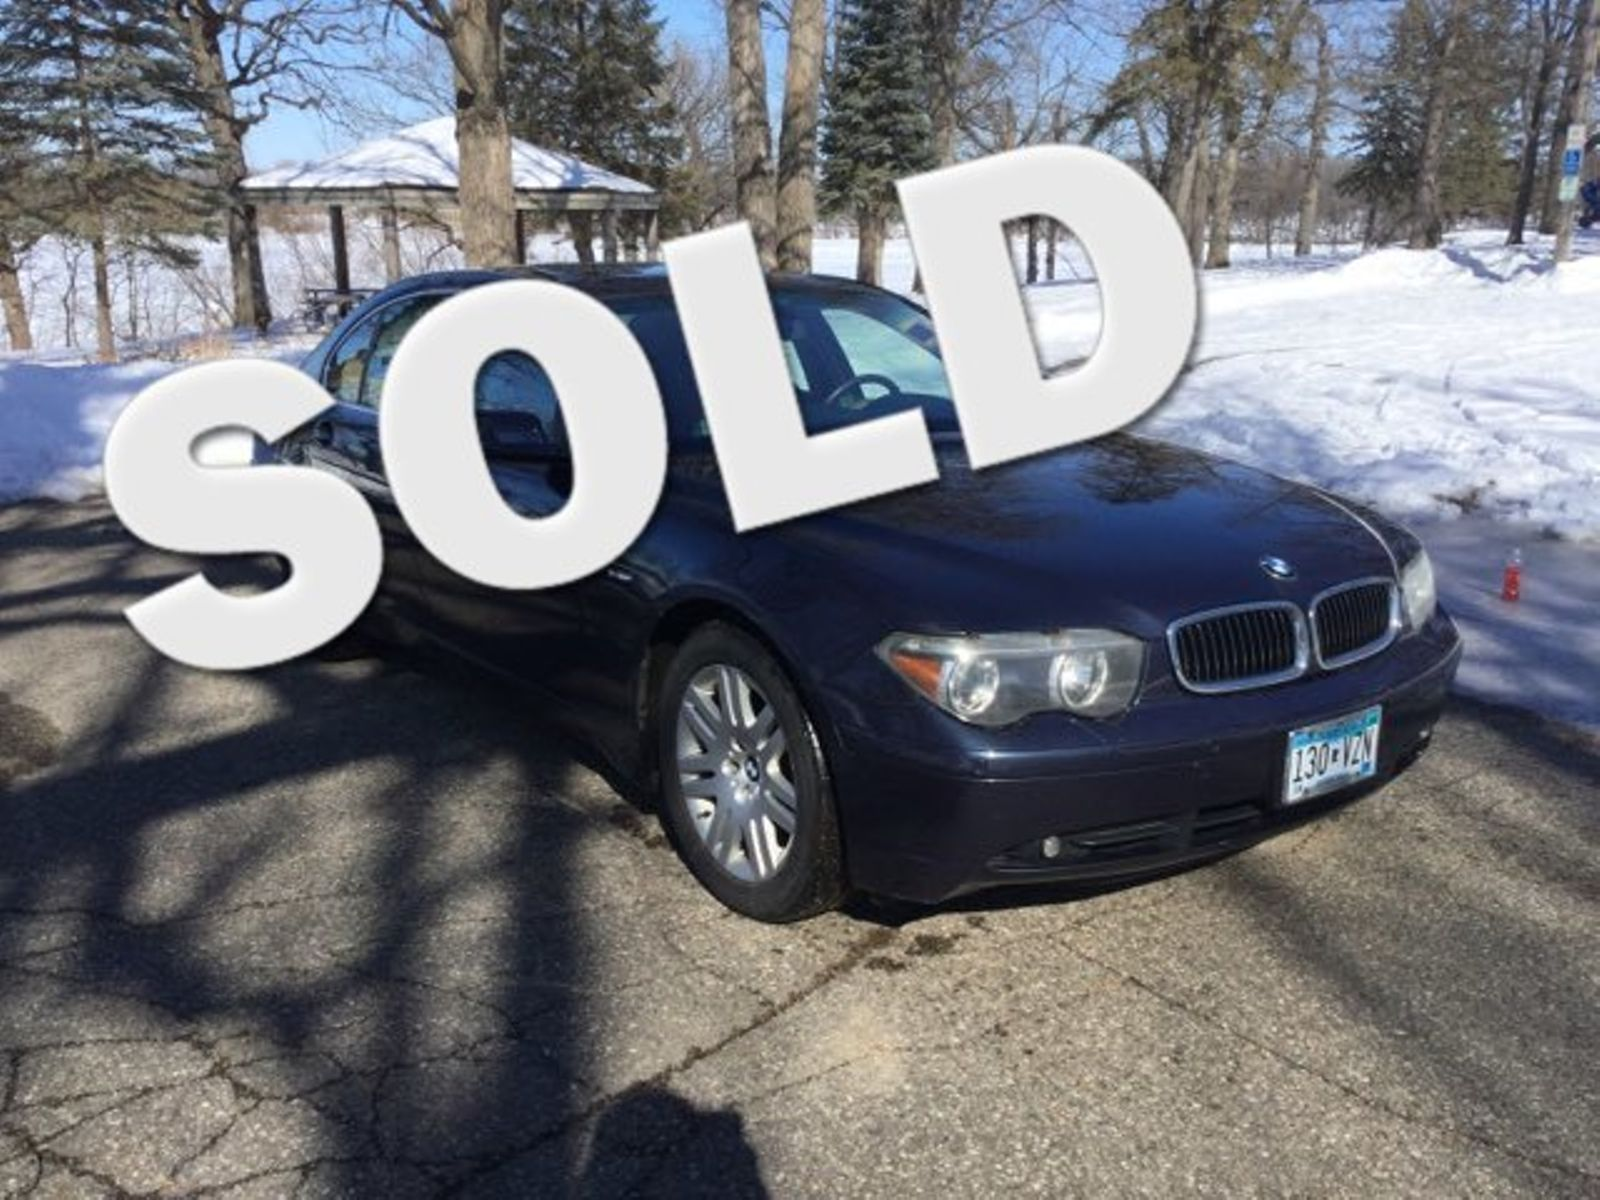 greater sedan paul st area used near bmw mn sale minneapolis xdrive htm for in the